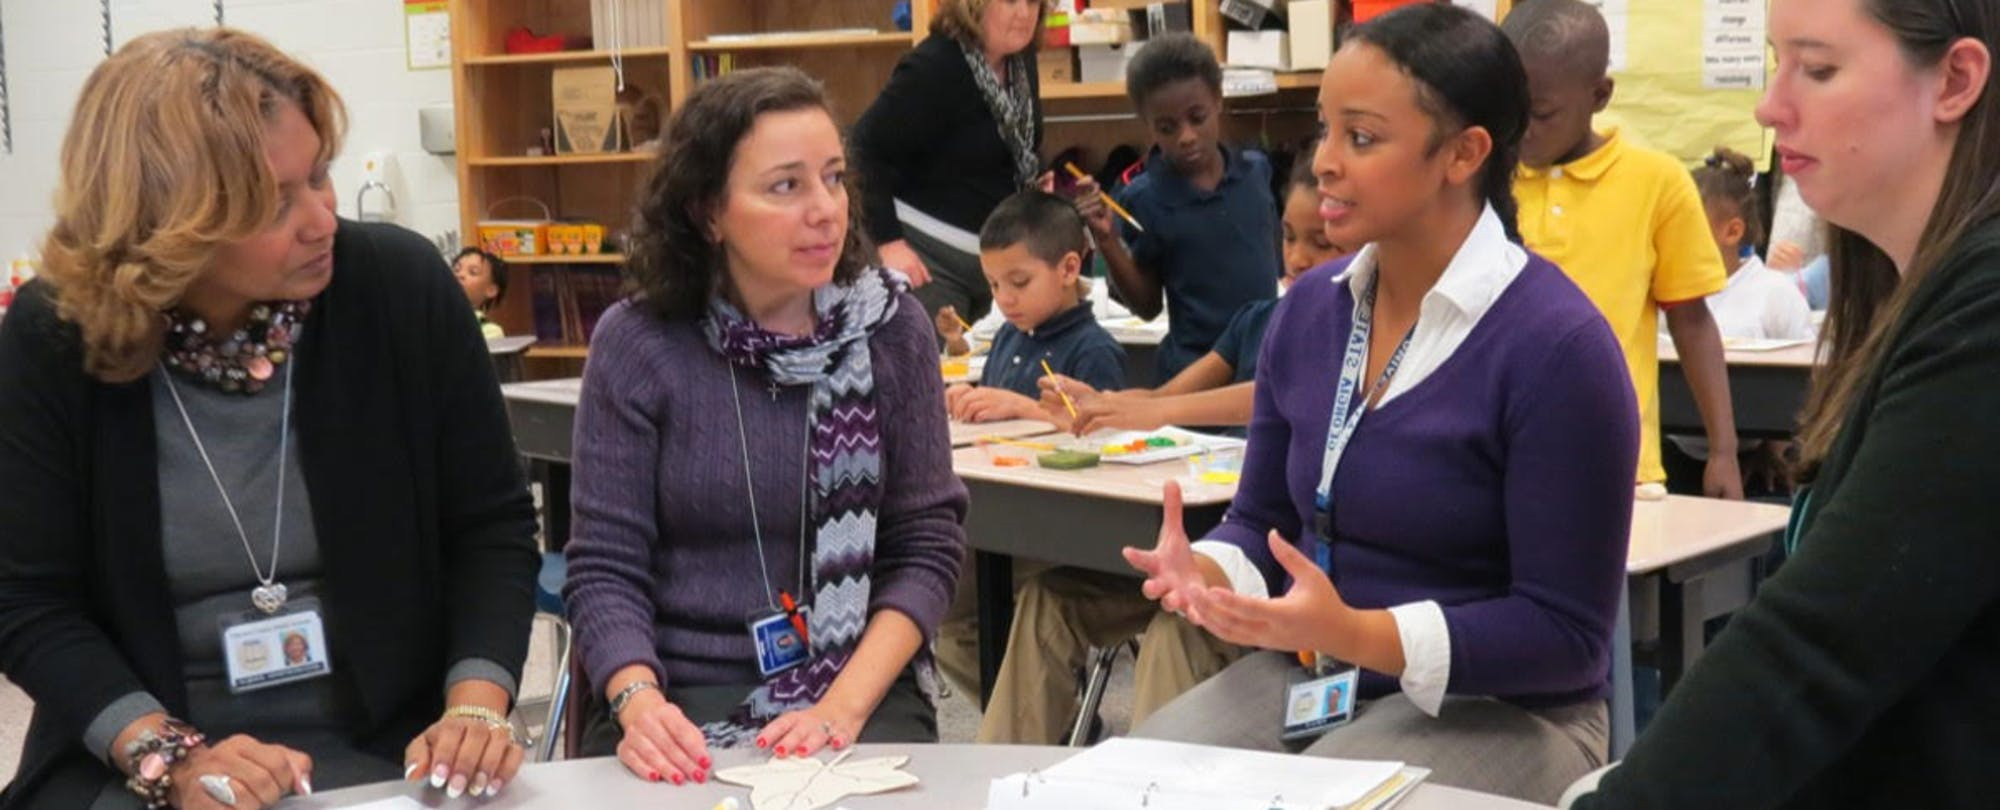 For Teachers, a STEAM Workshop Where Arts Are Key